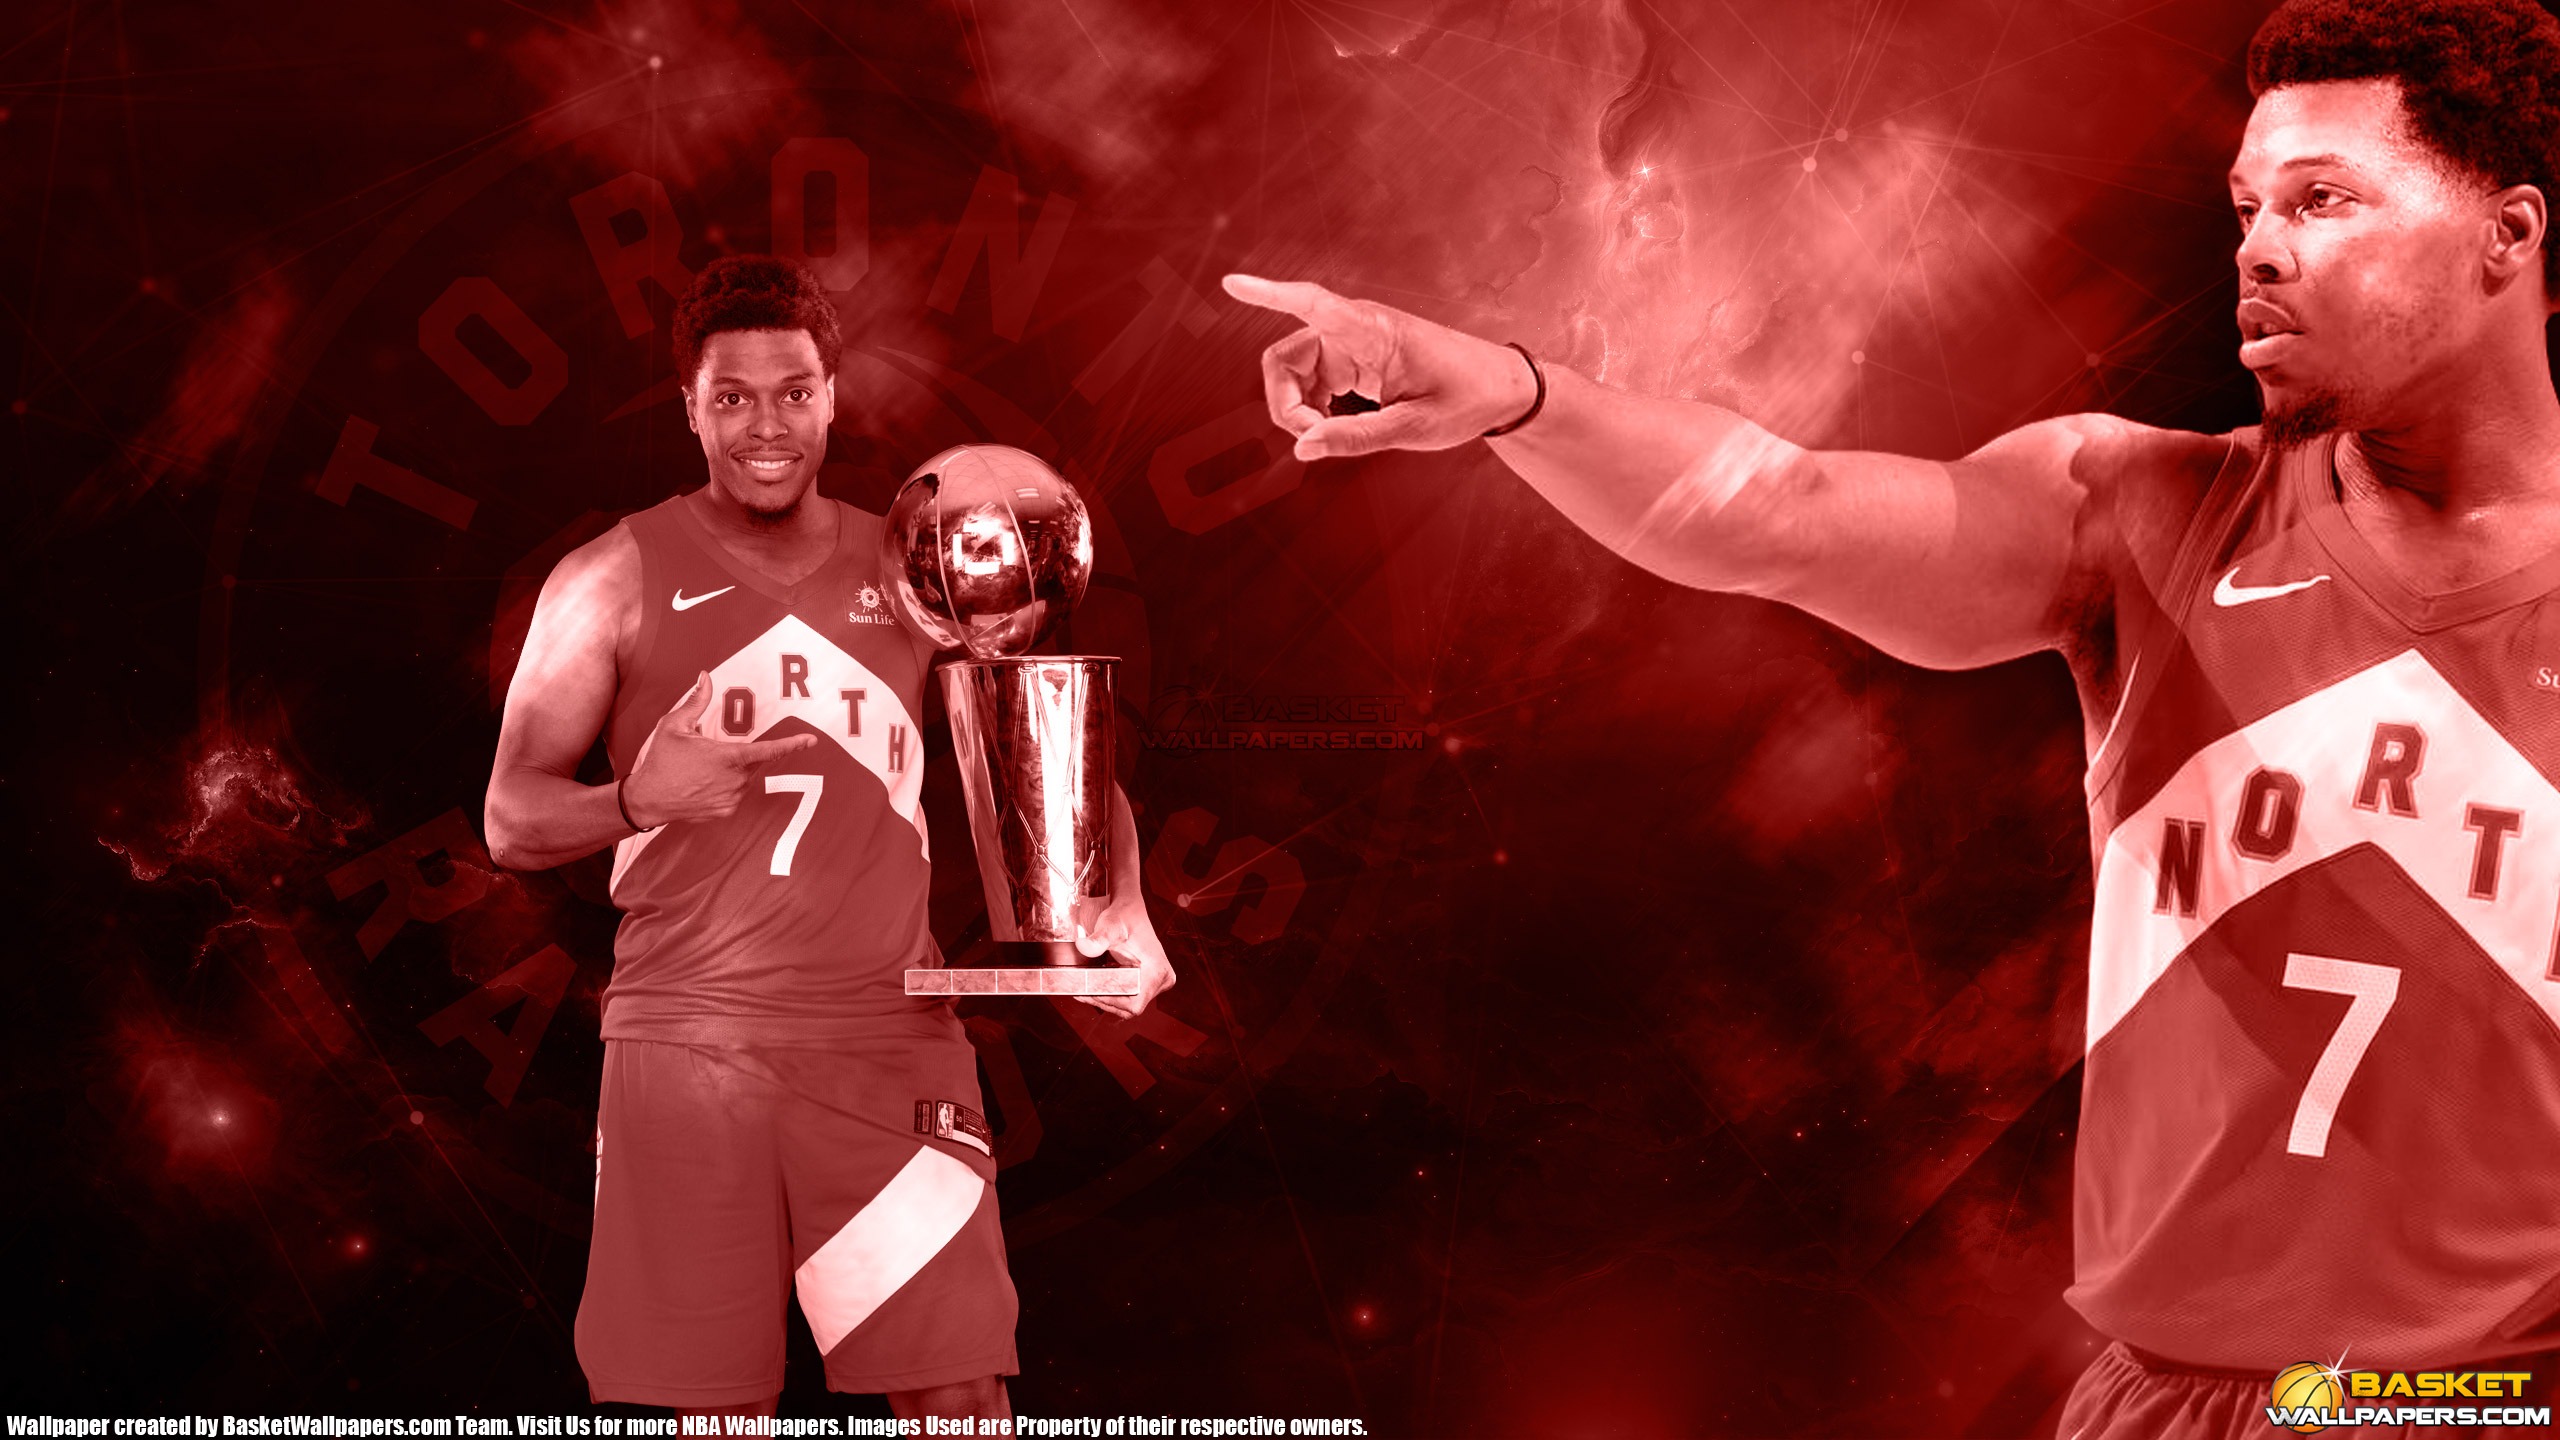 Kyle Lowry 2019 NBA Champion 2560x1440 Wallpaper